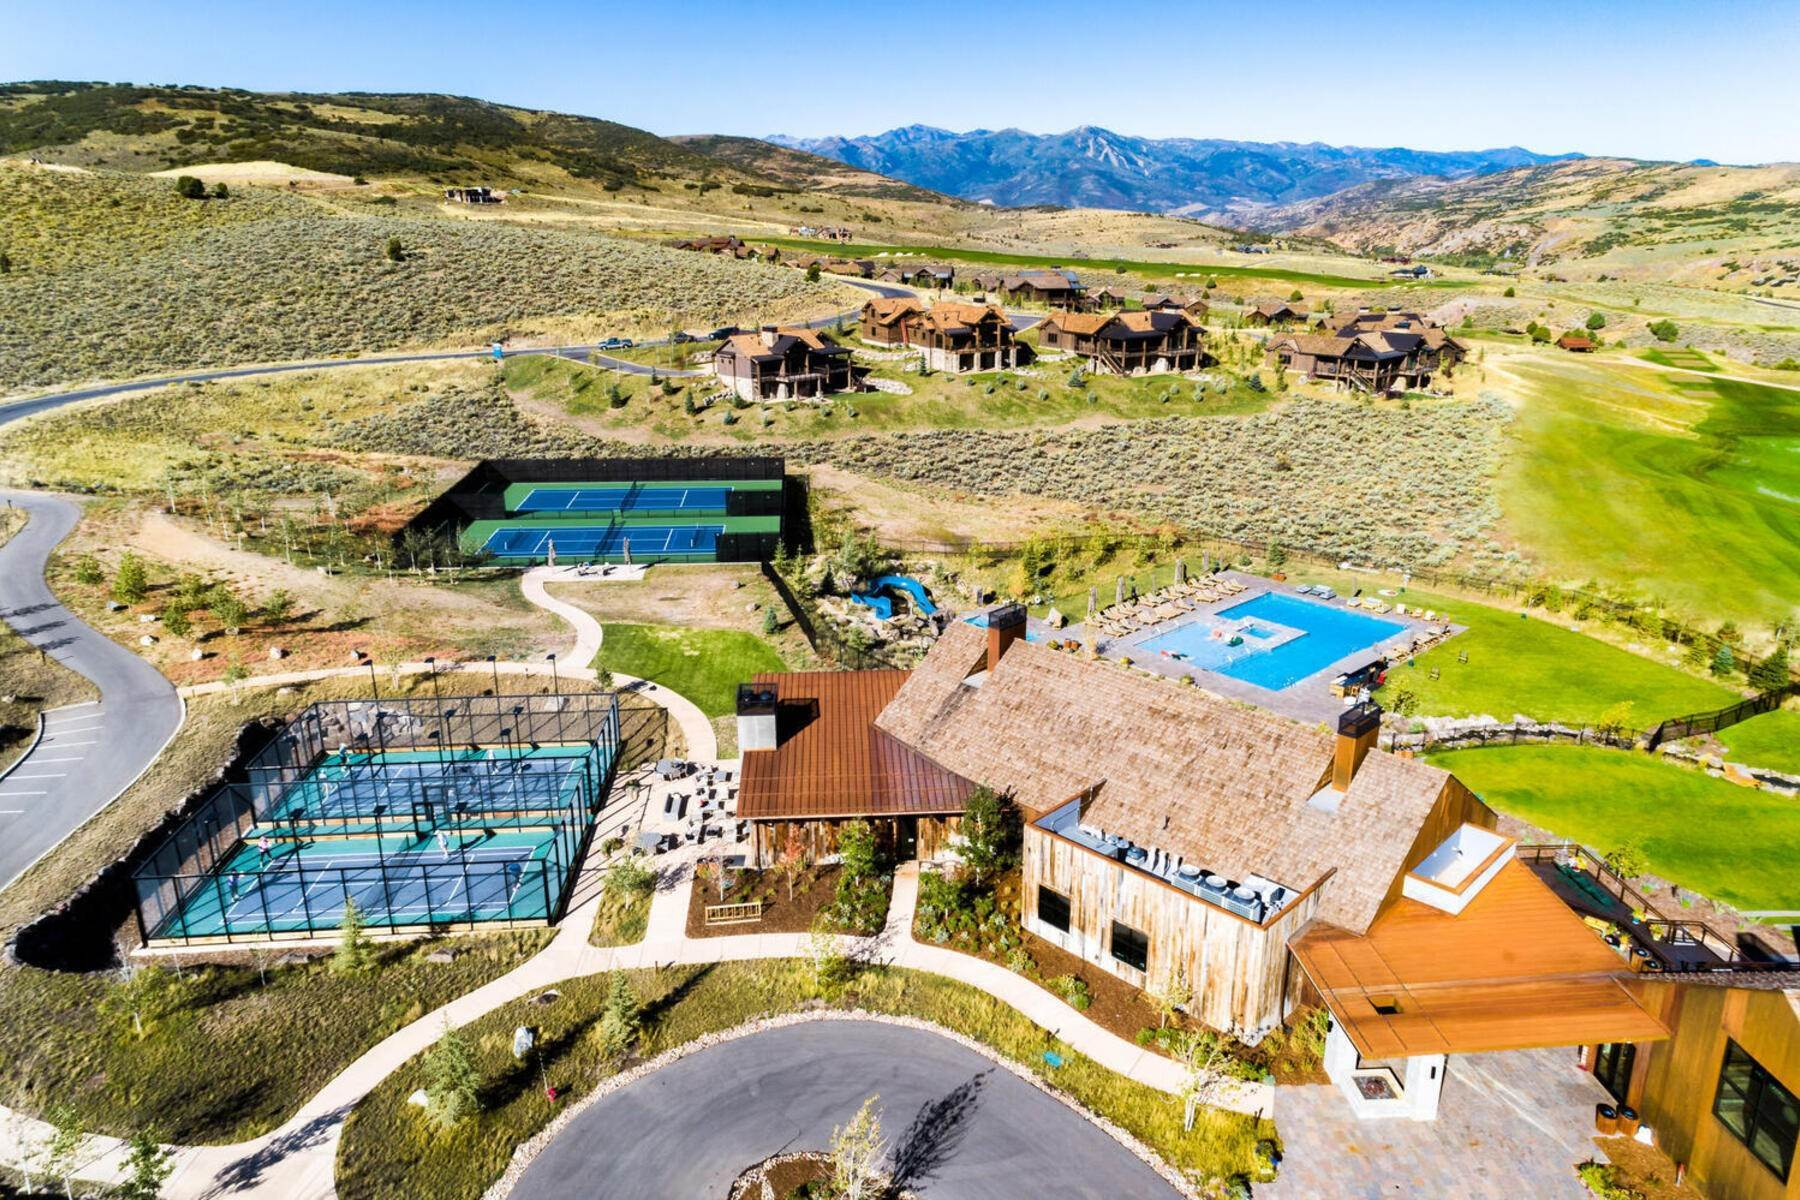 17. fractional ownership prop for Sale at 1/8 Fractional Ownership Opportunity In Brand New Kingfisher Cabin 7615 E Stardust Court #319E, 5.13 Heber City, Utah 84032 United States